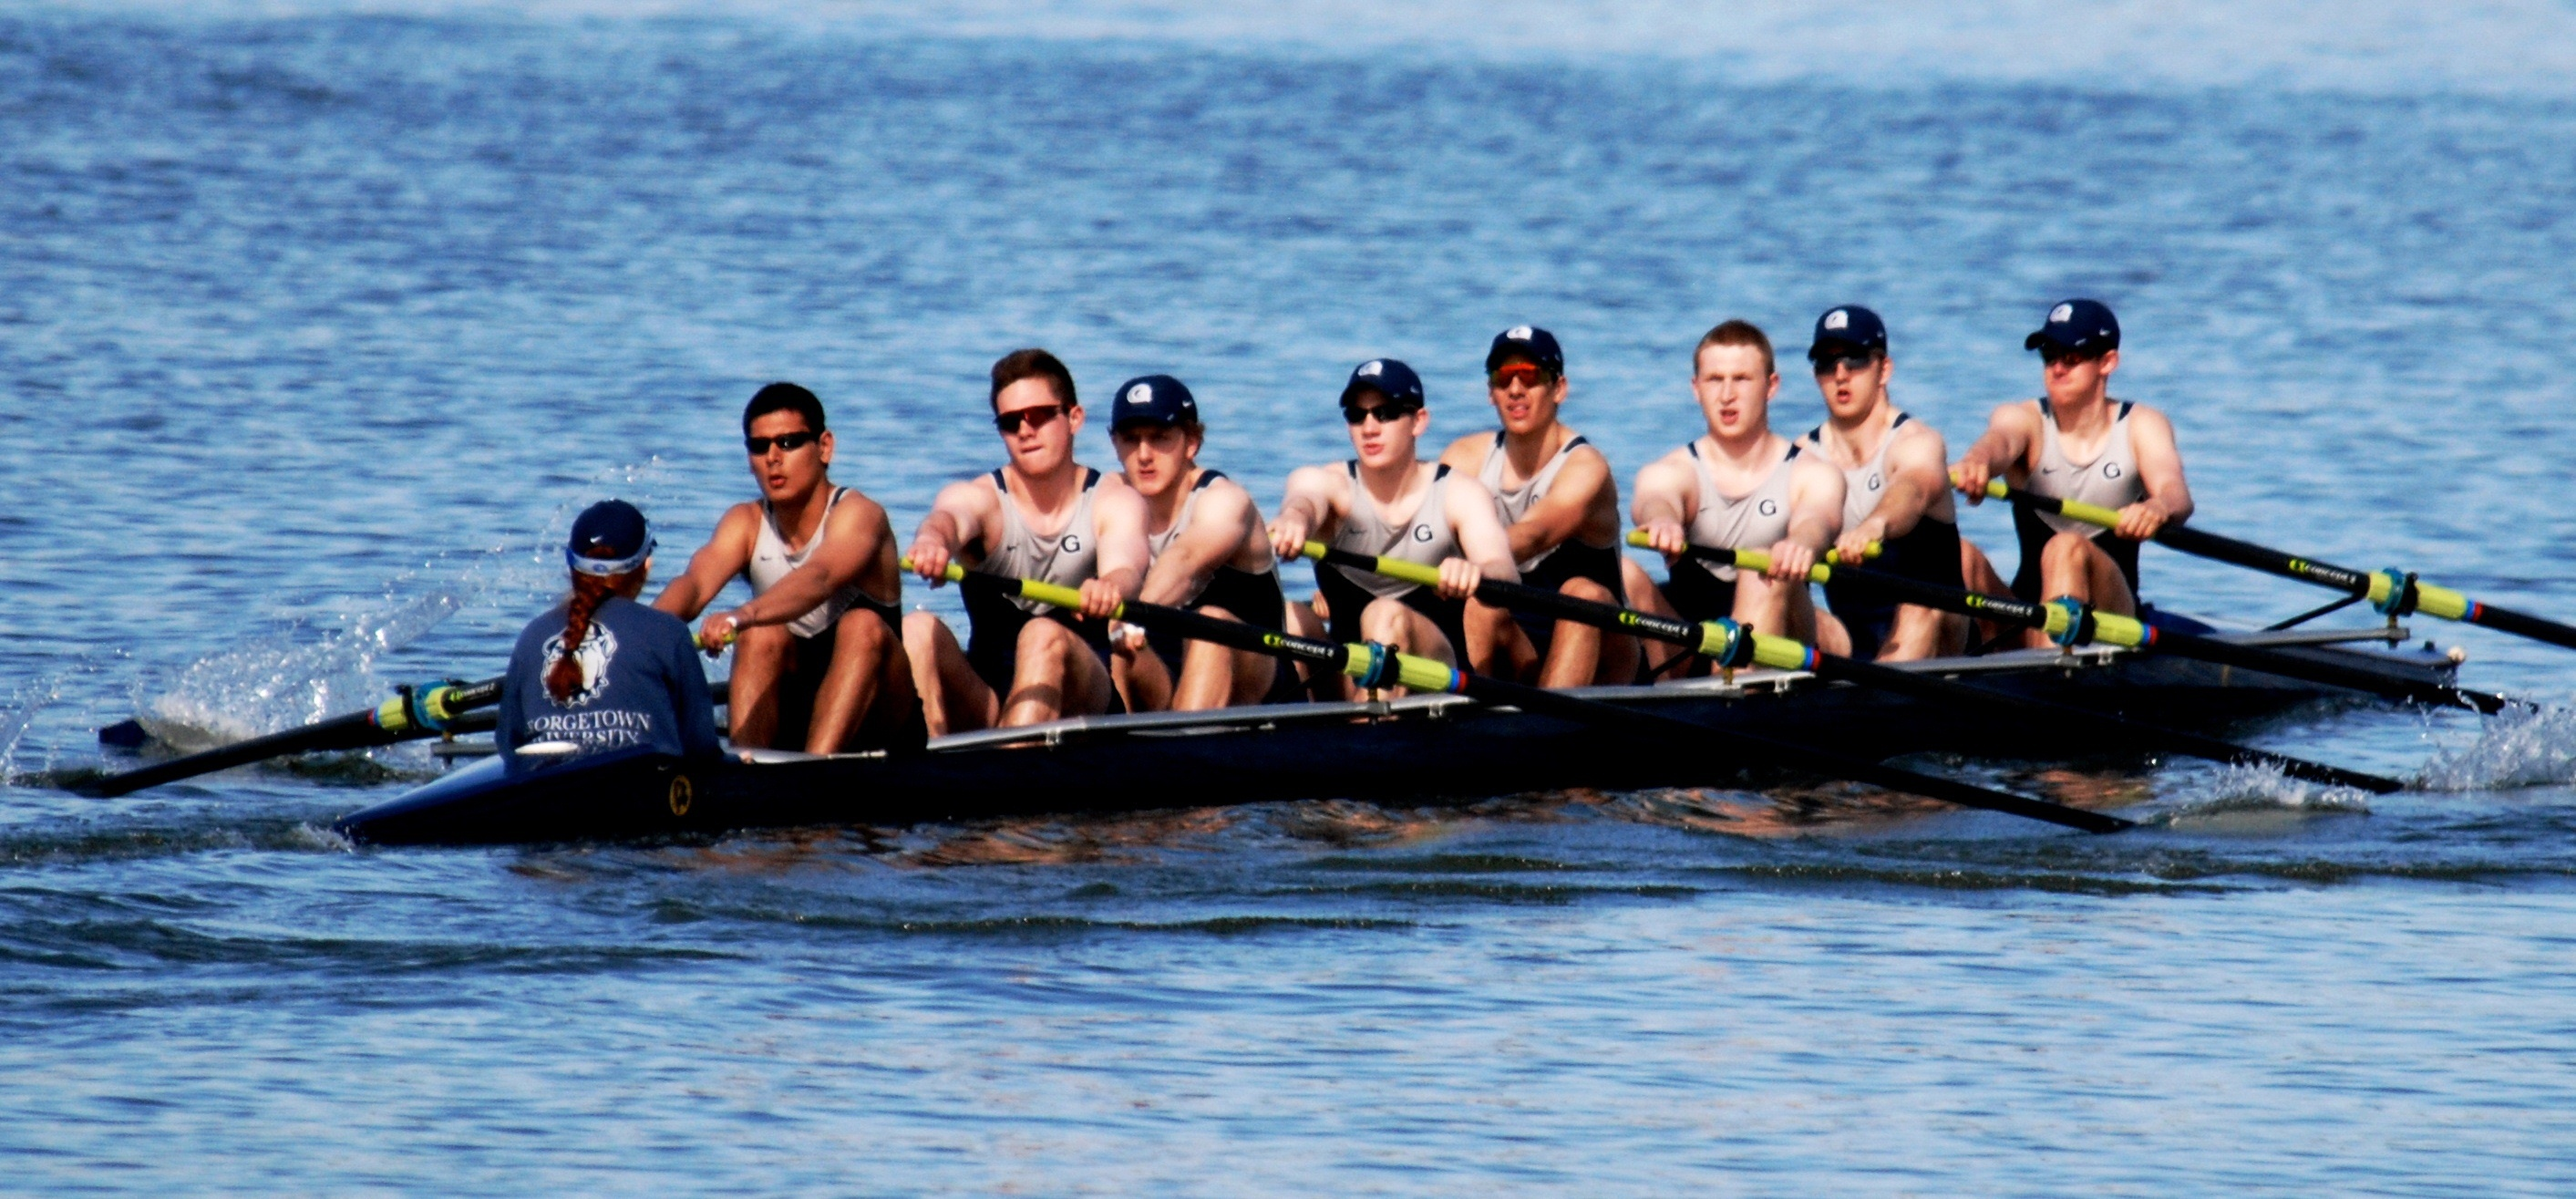 The Hoyas went 7-3 on the weekend, finishing third overall in the point standings.